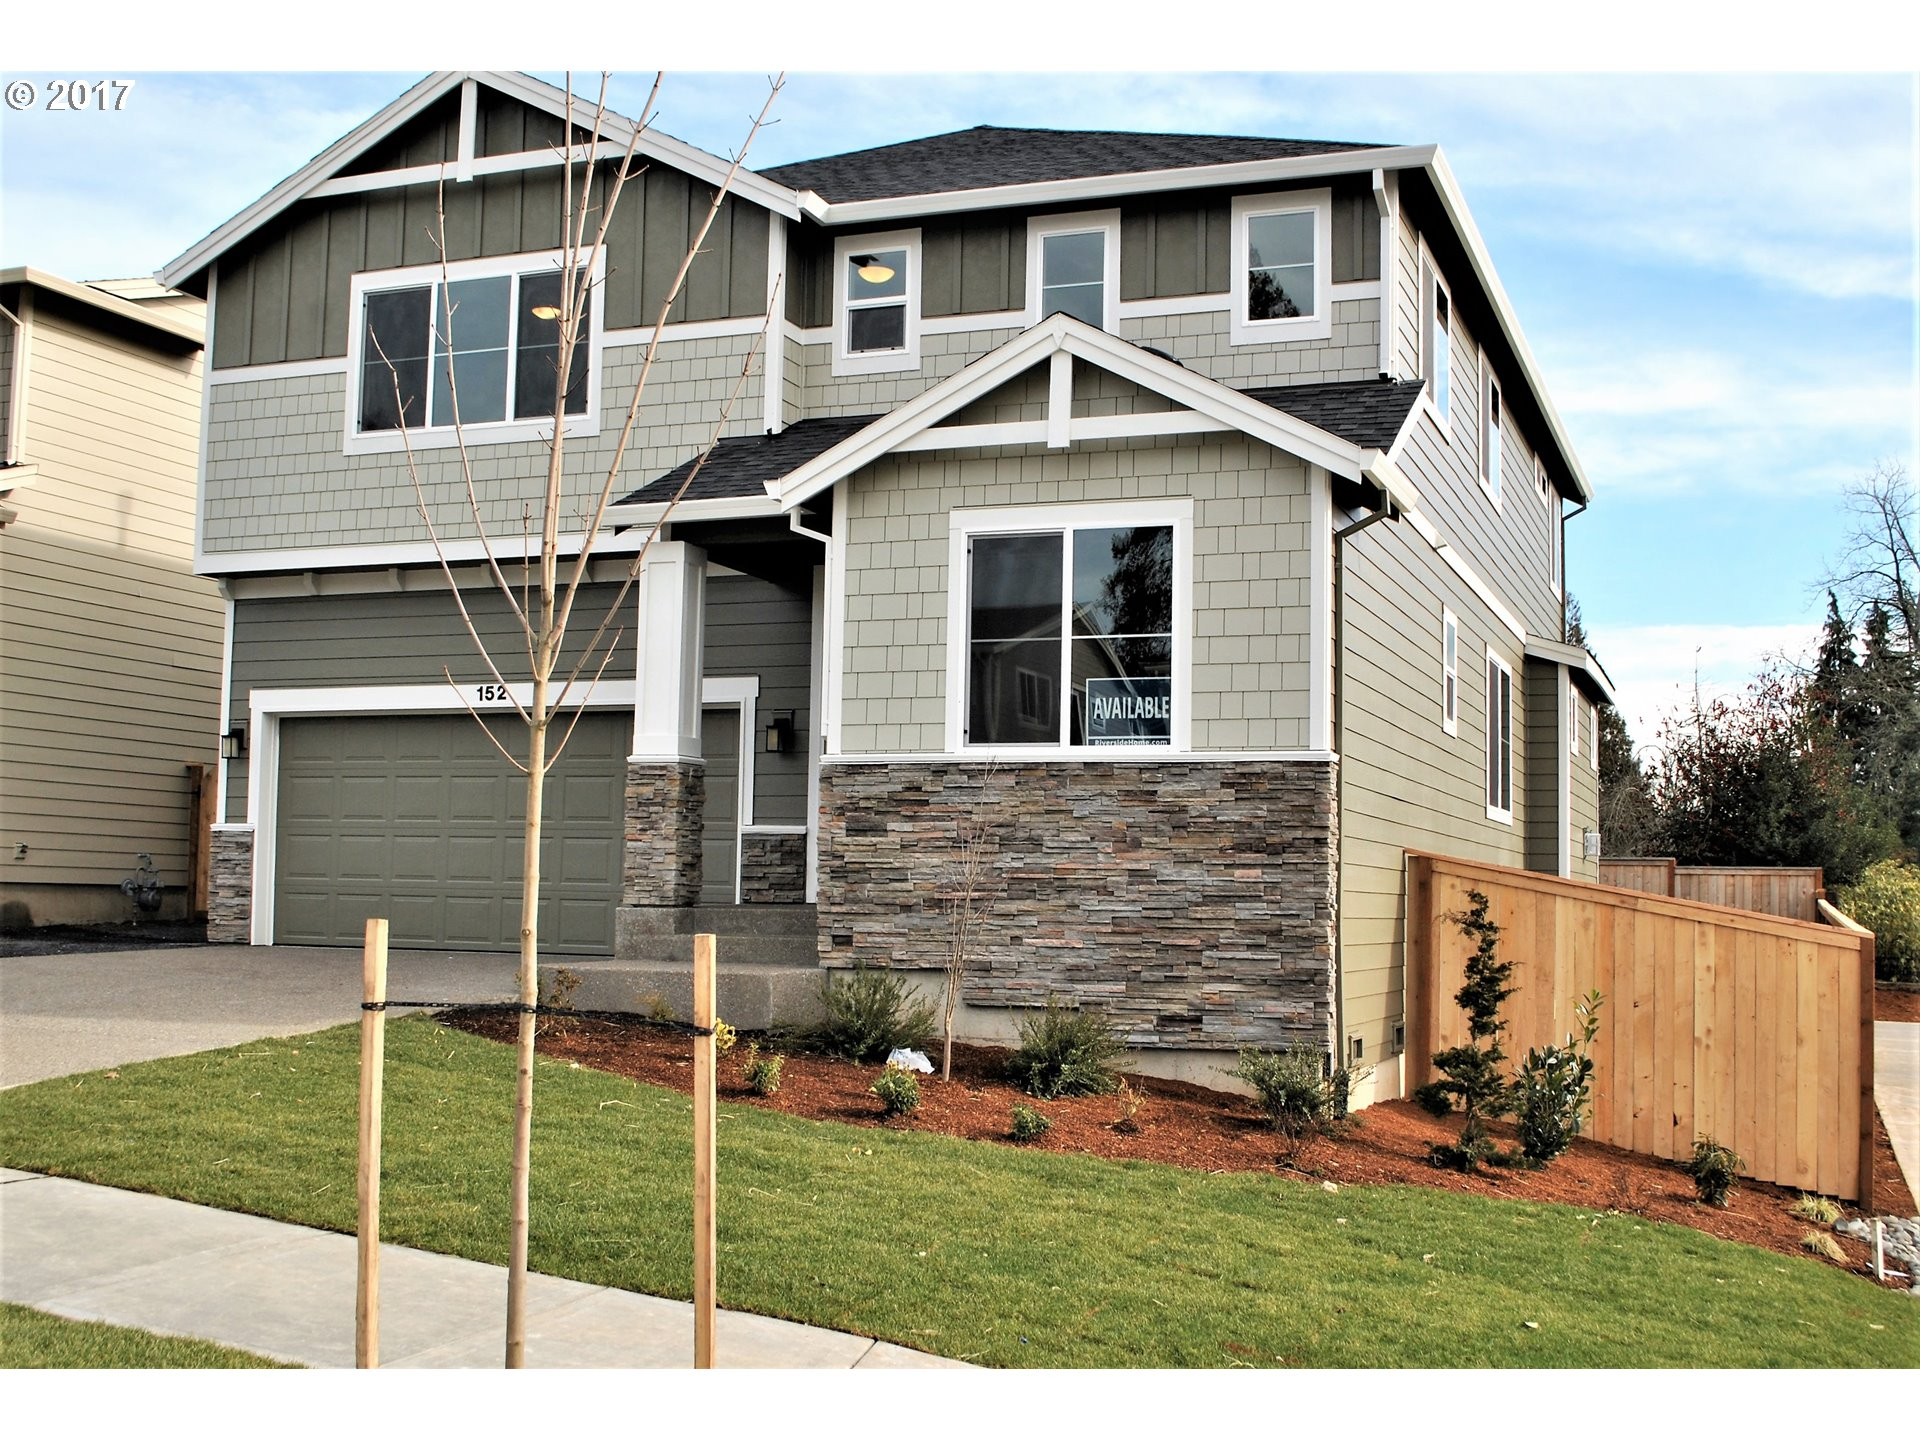 2626 sq. ft 4 bedrooms 3 bathrooms  House For Sale,Hillsboro, OR